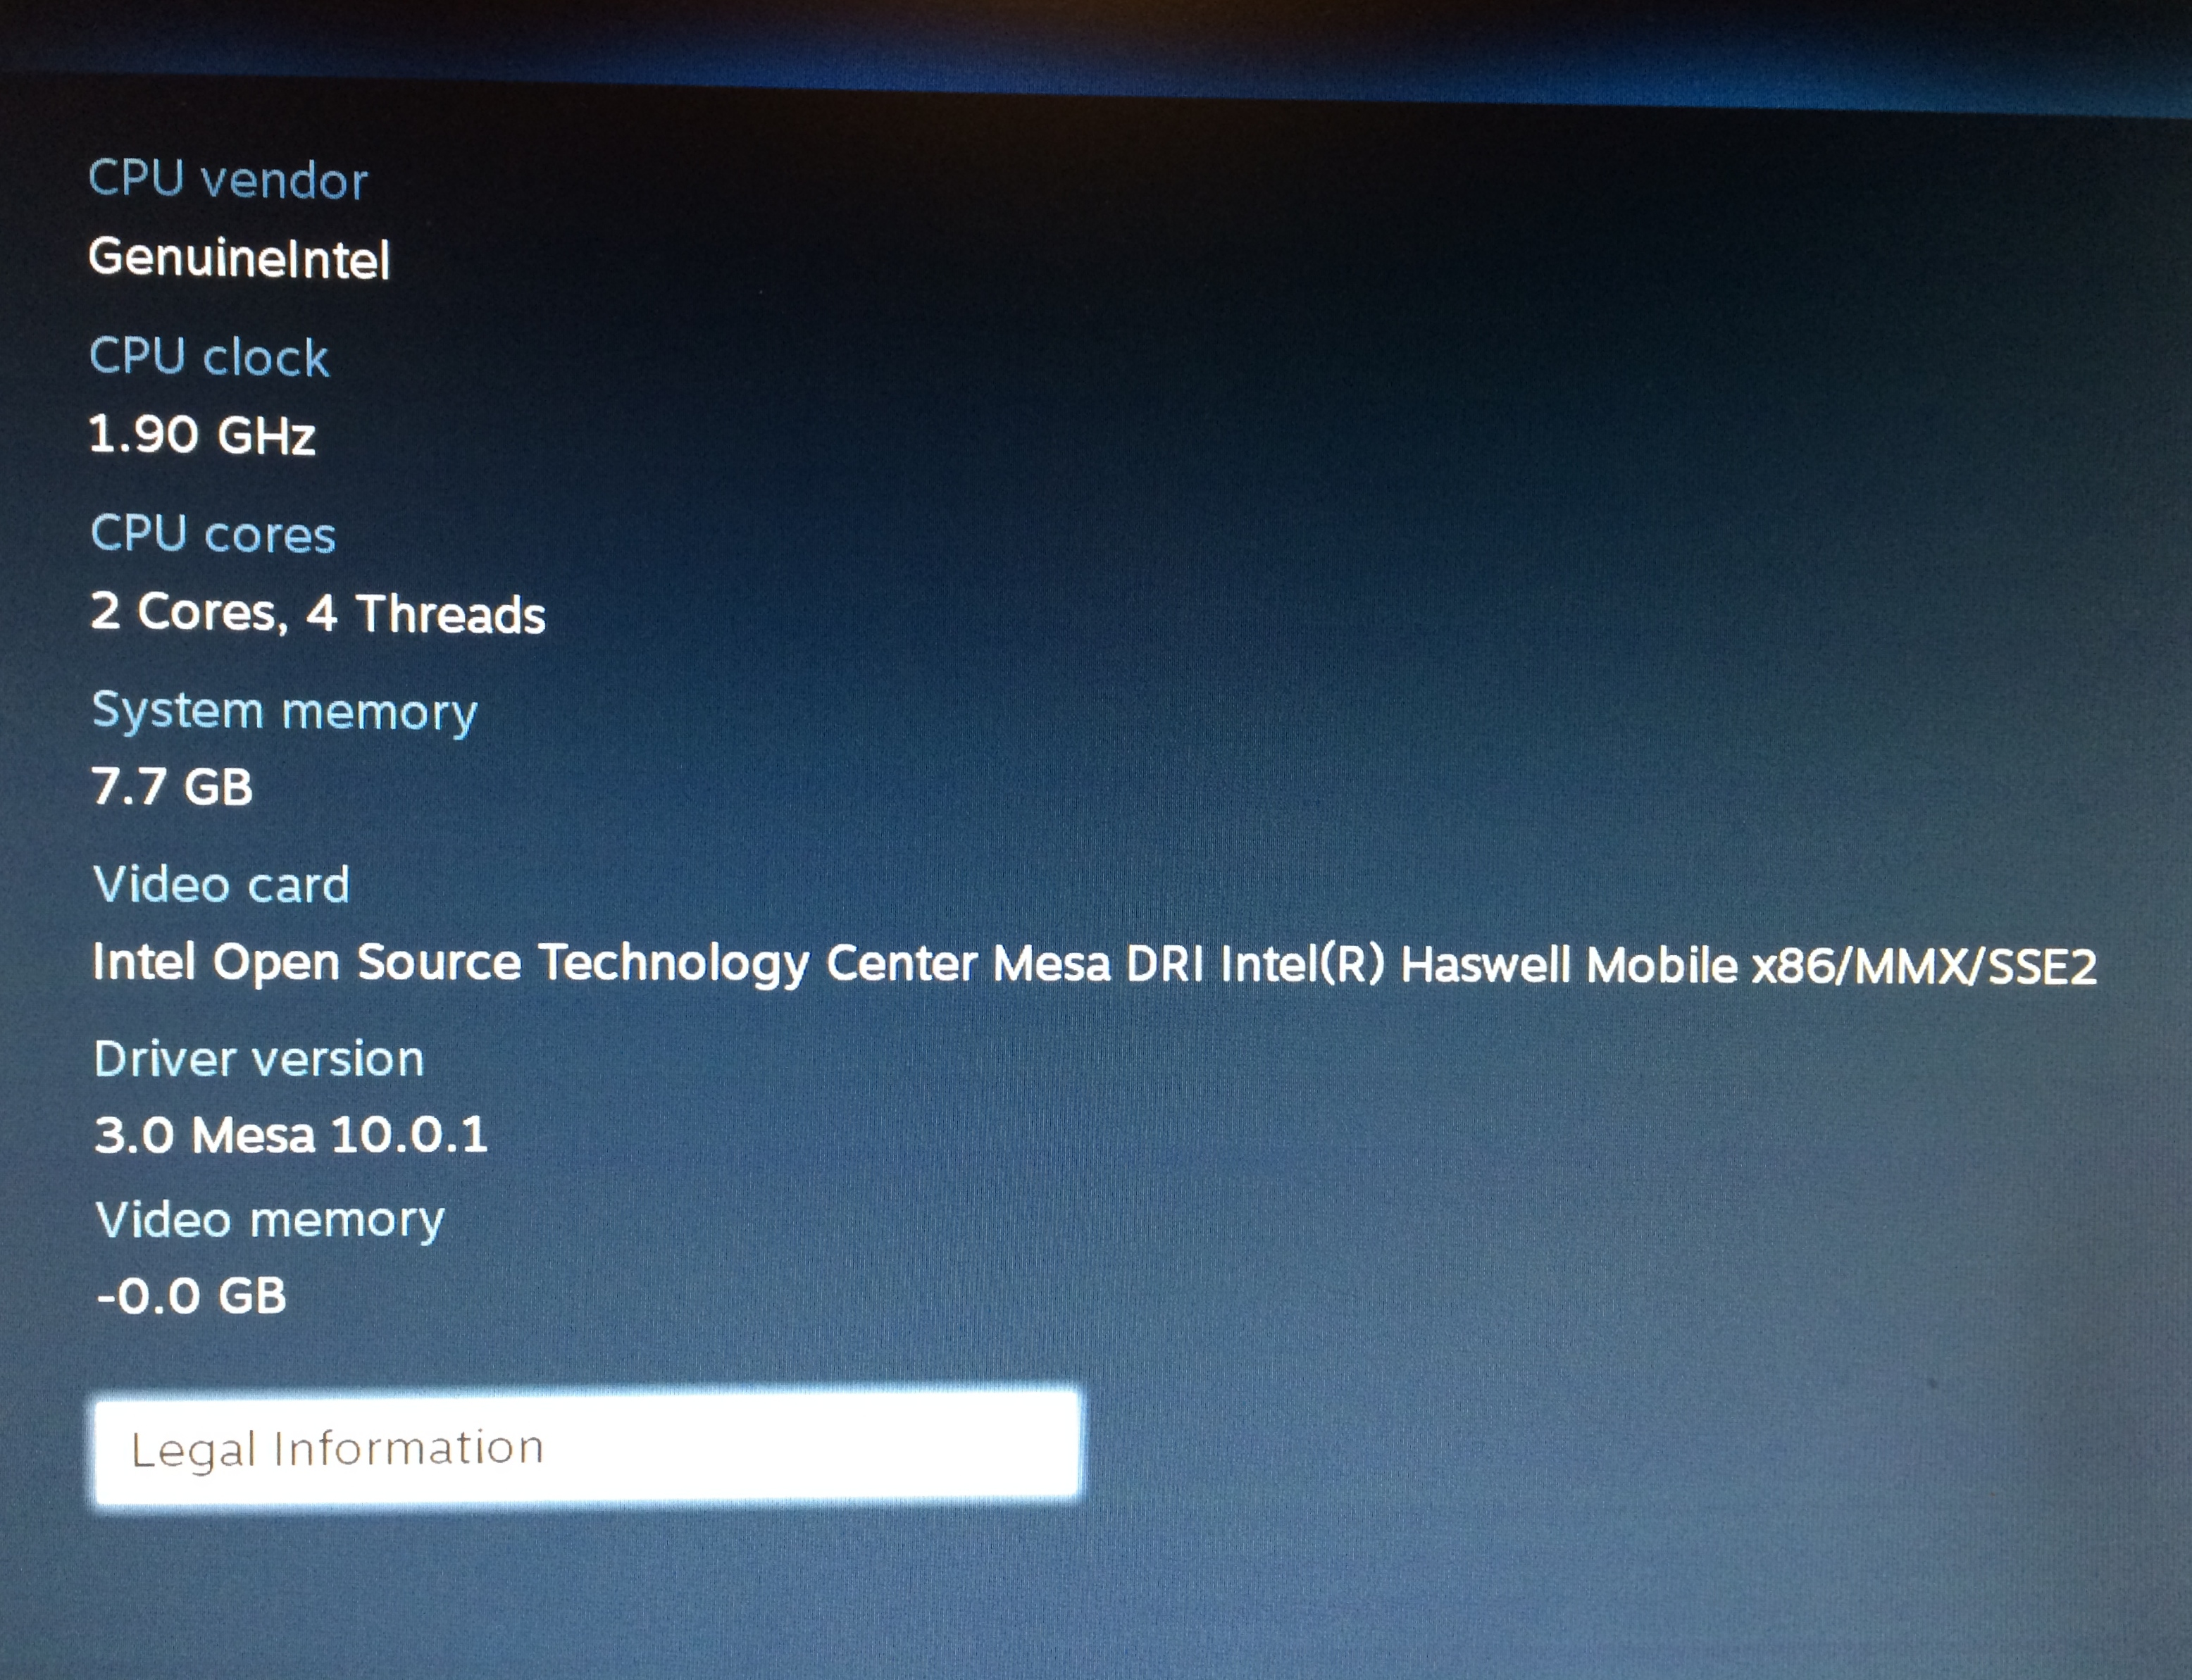 SteamOS added Intel GPU support earlier this month after an Nvidia-only launch.